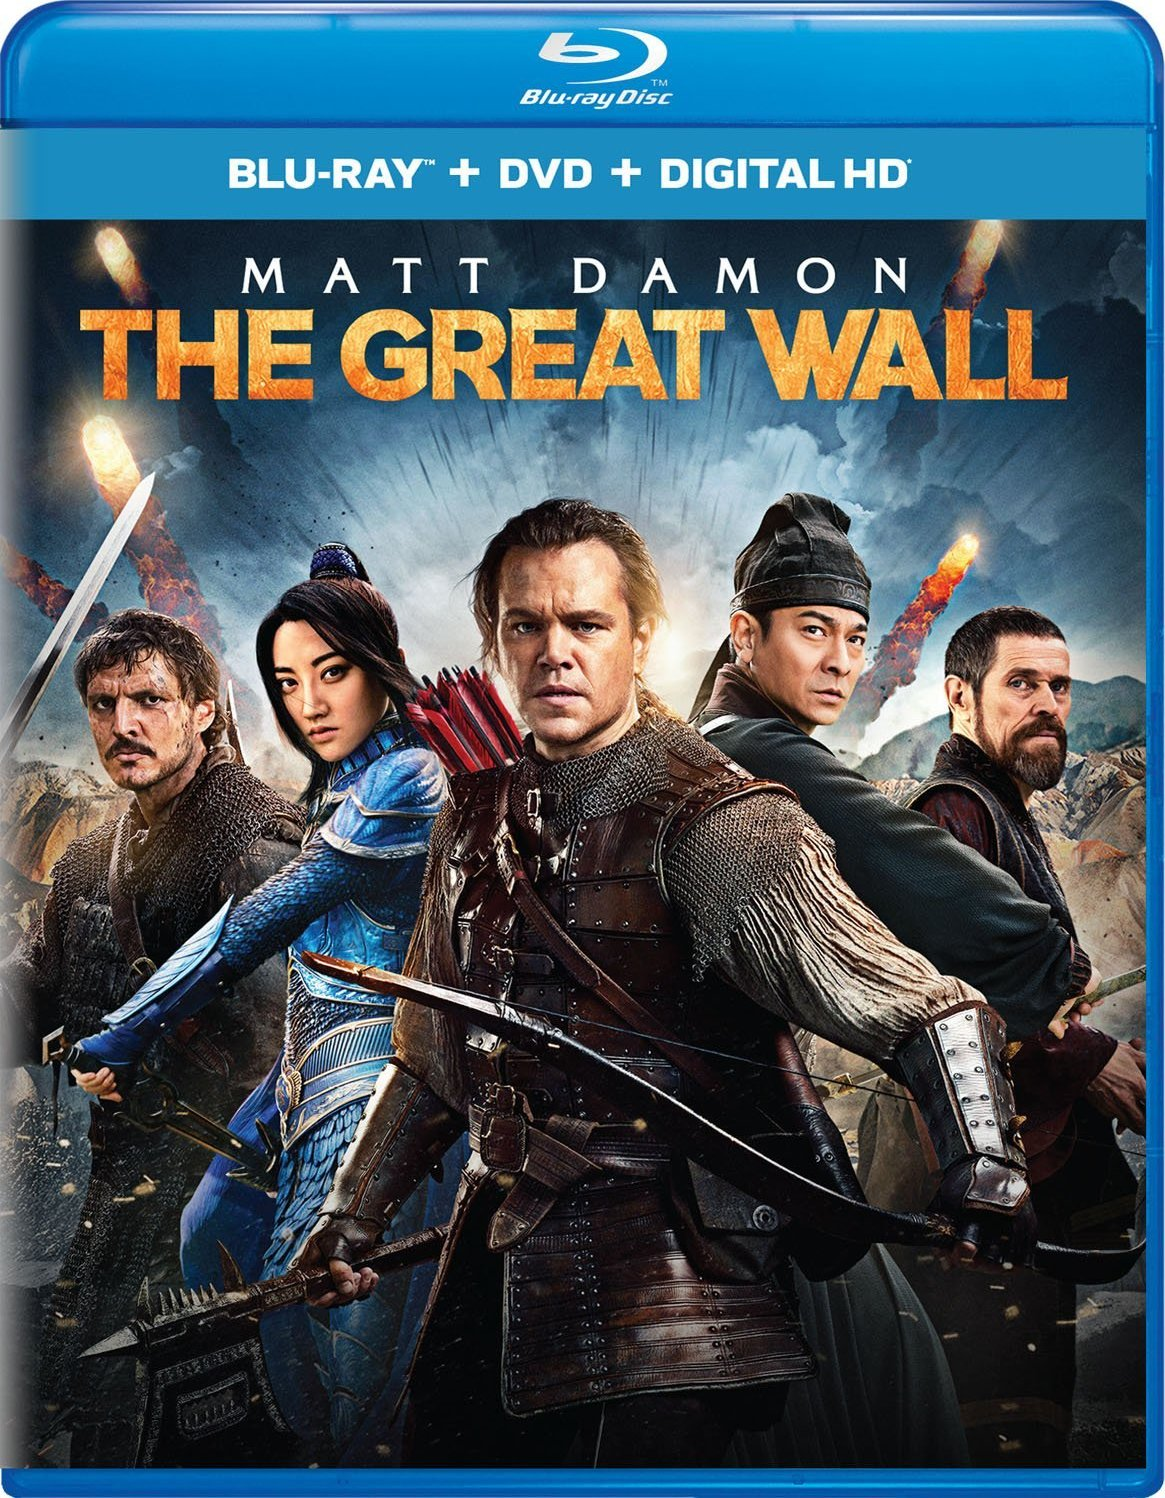 The Great Wall (2016) poster image